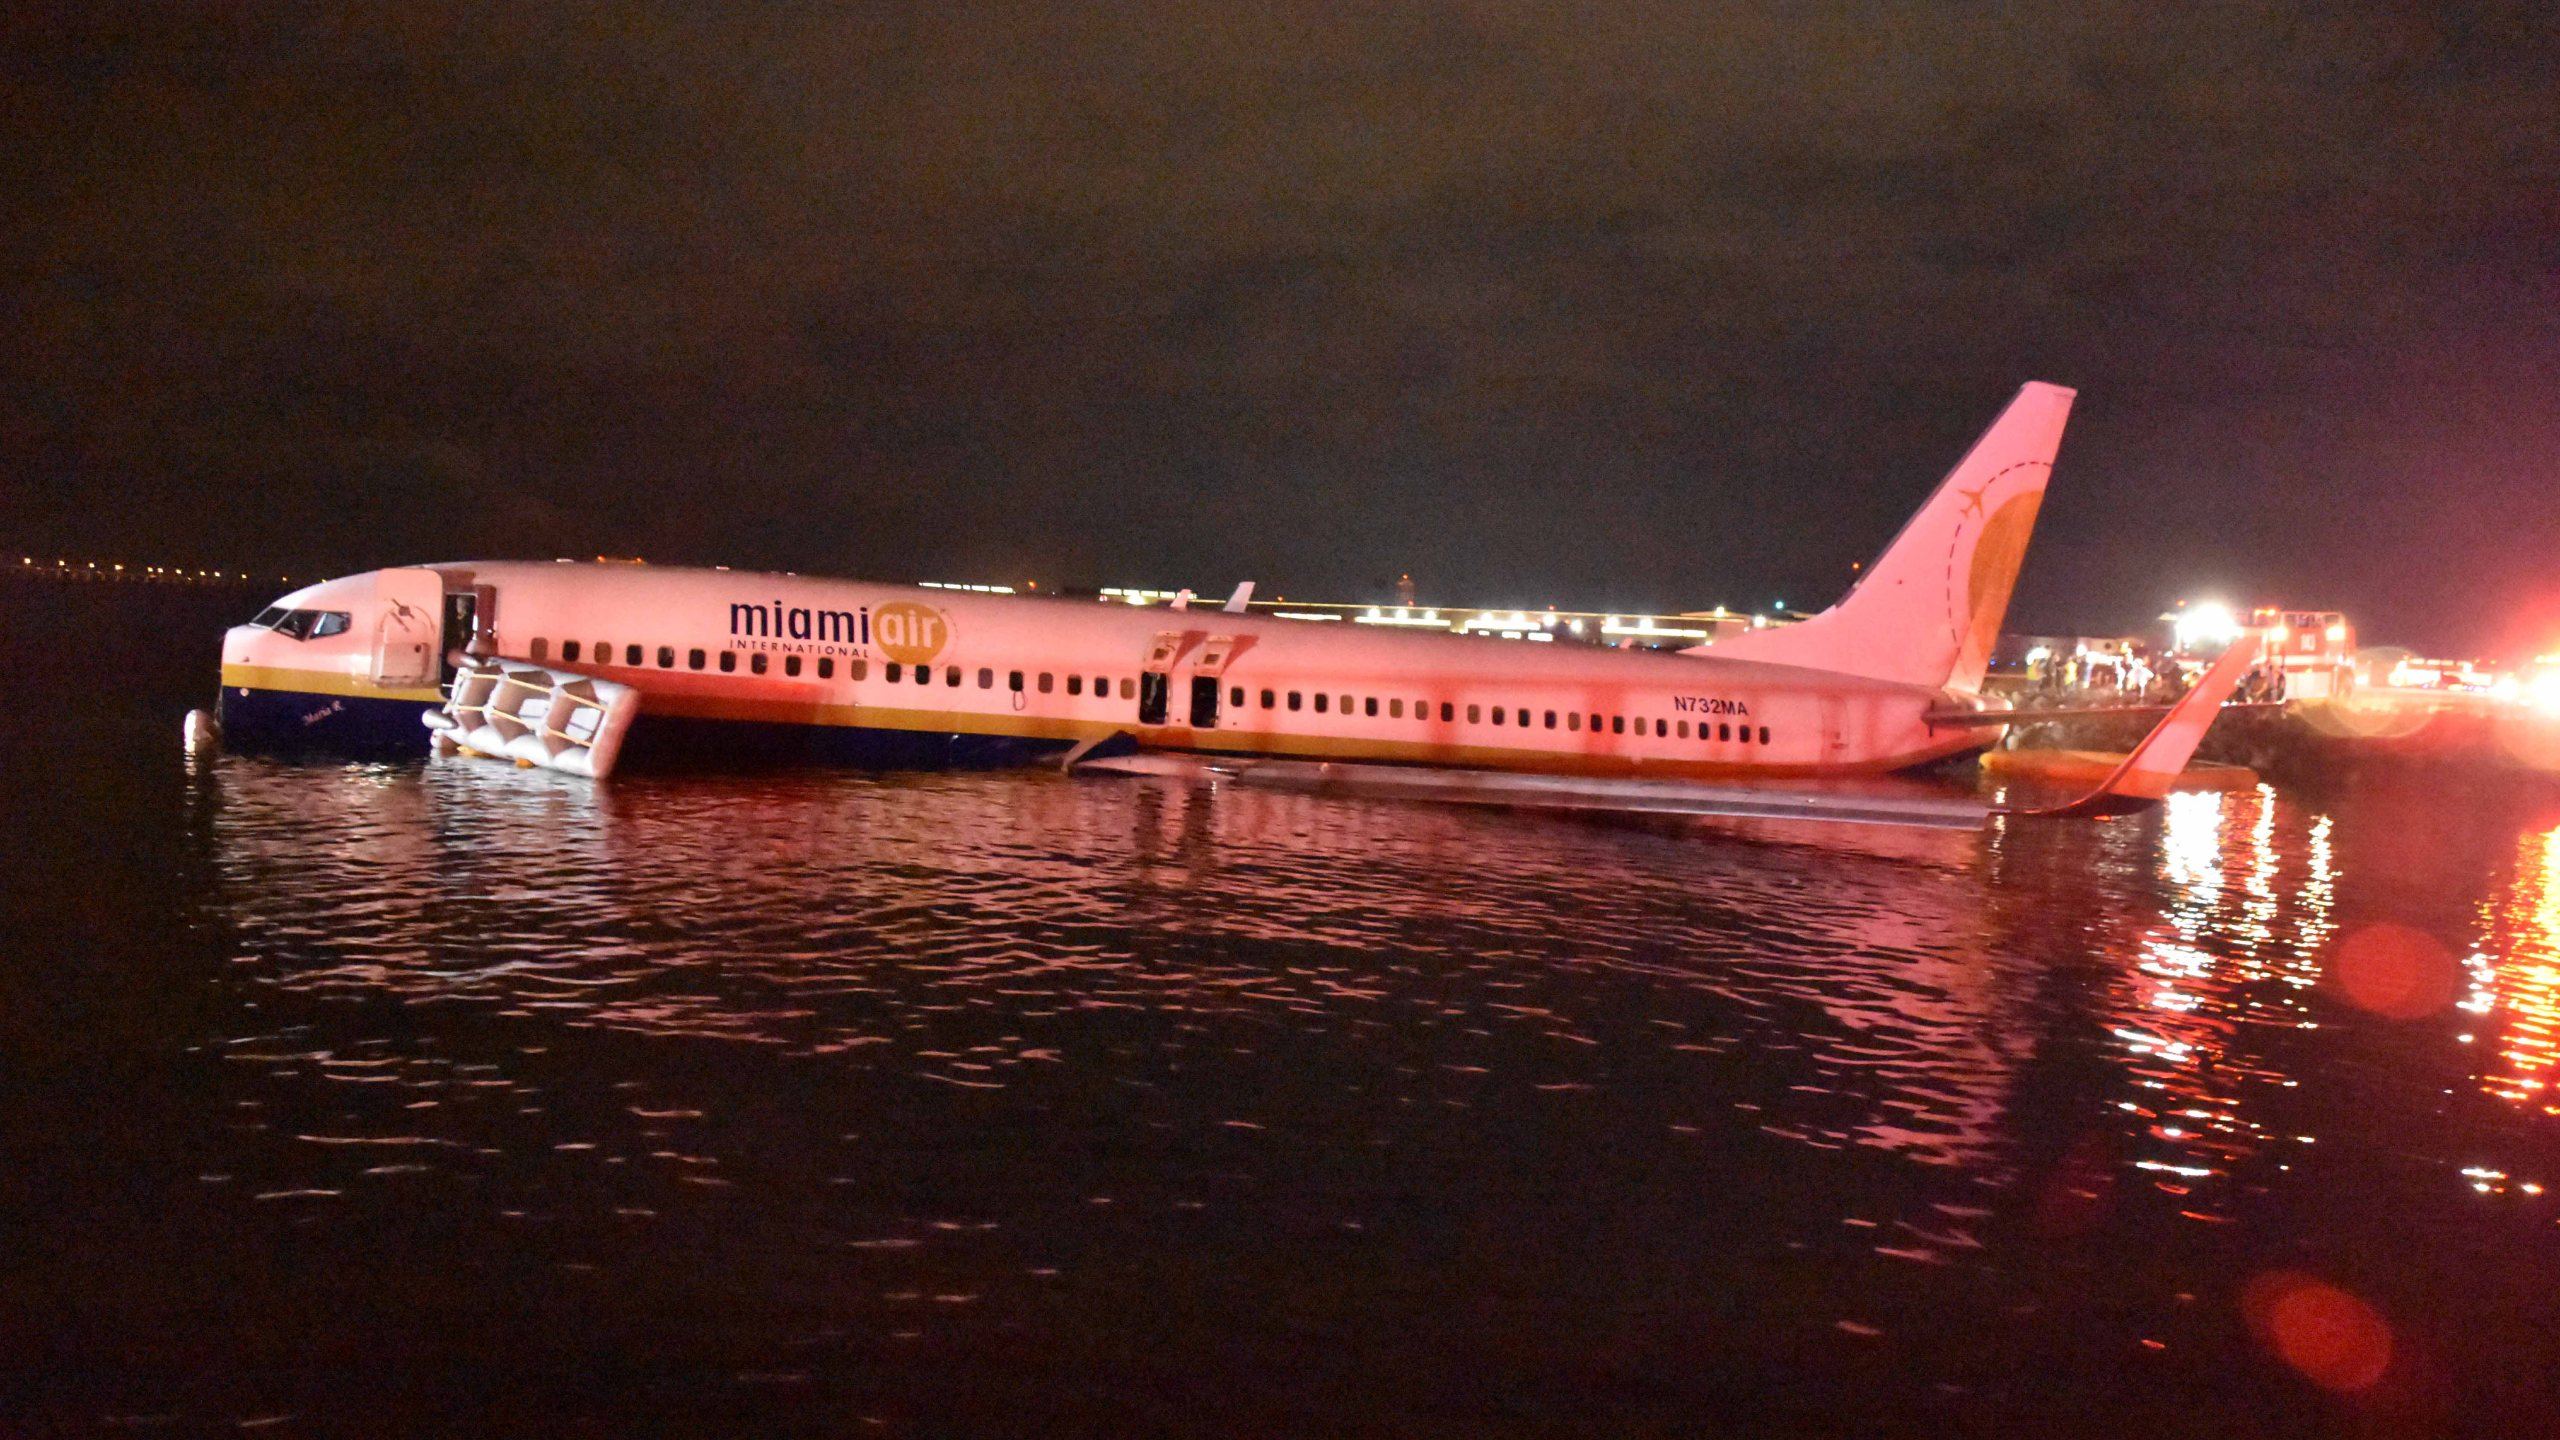 In this handout released by the U.S. Navy, a Boeing 737 aircraft carrying 136 passengers and seven crew from Naval Station Guantanamo Bay, Cuba, slid off the runway at Naval Air Station Jacksonville, Fla. into the St. Johns River, May 3, 2019. (Credit: U.S. Navy via Getty Images)